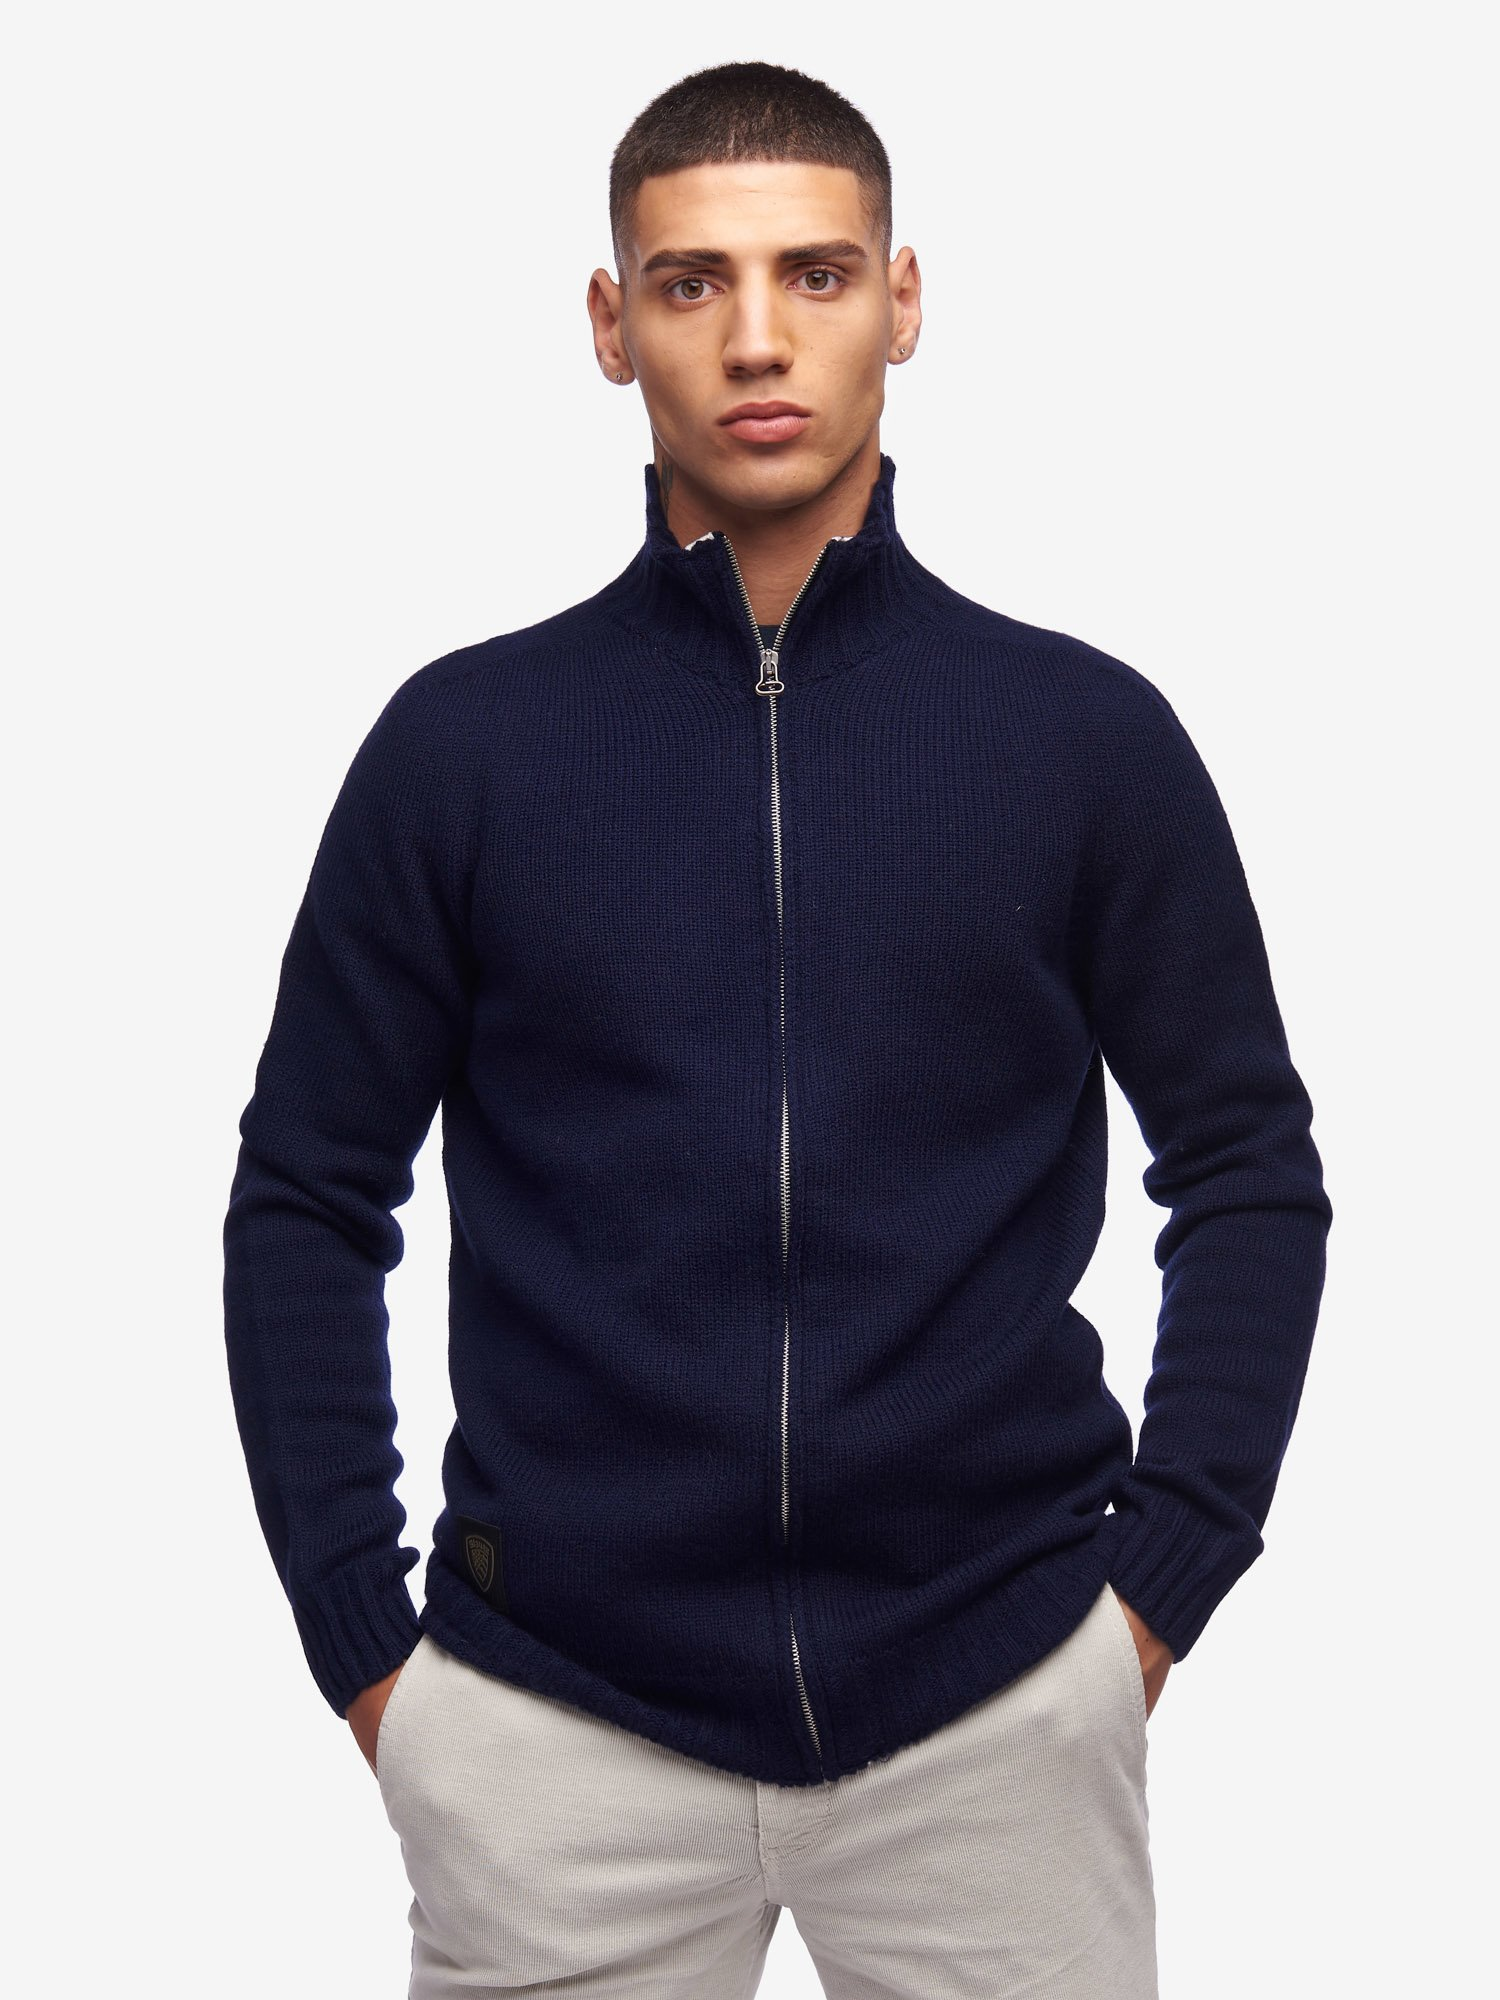 ZIP SWEATER - Blauer